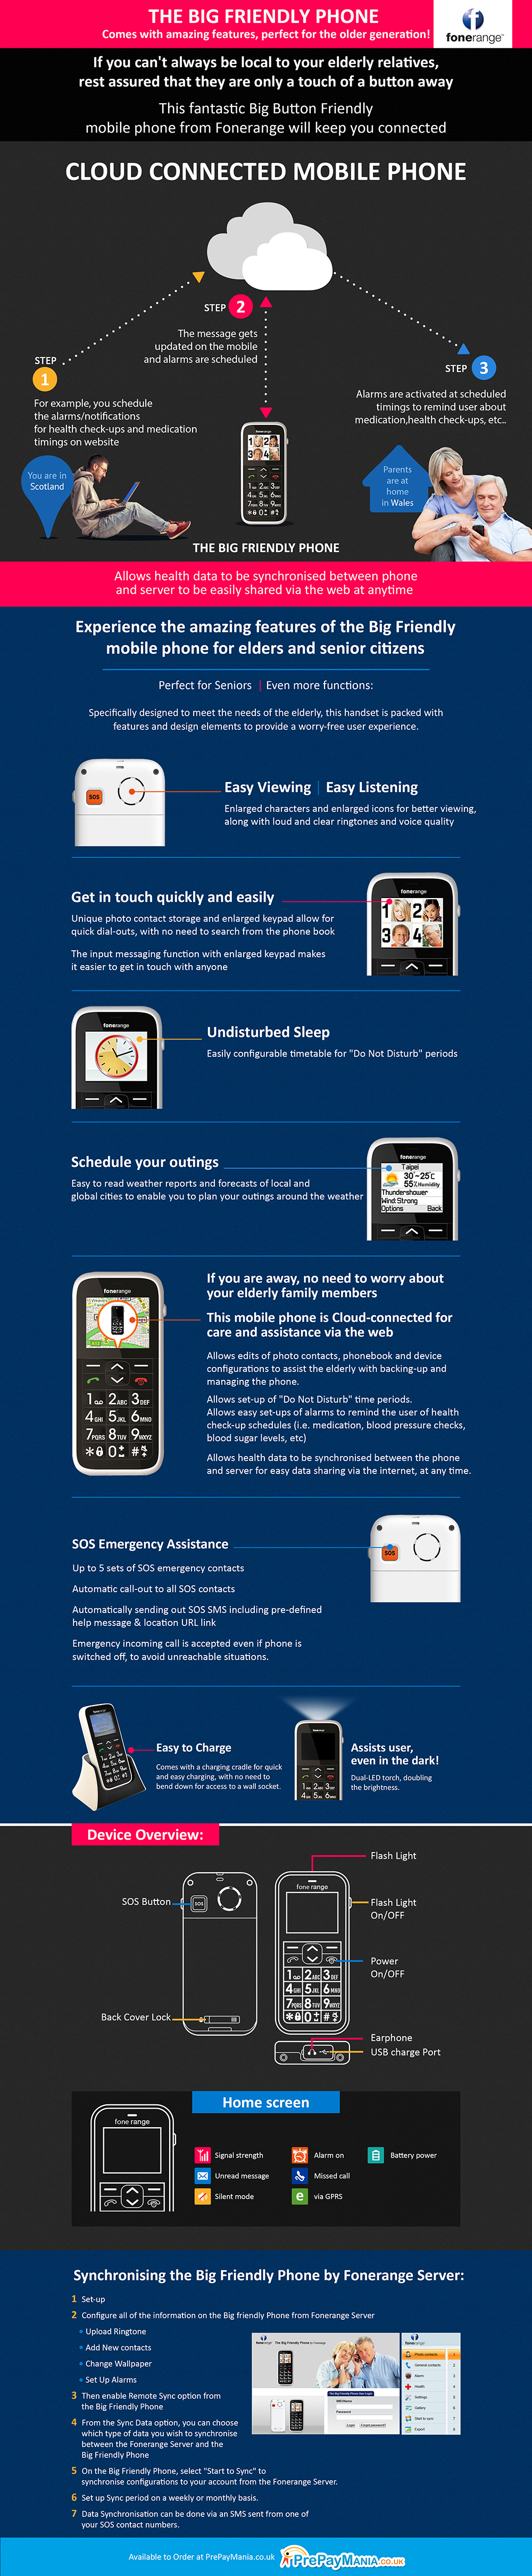 The Big Friendly Phone by Fonerange - Infographic